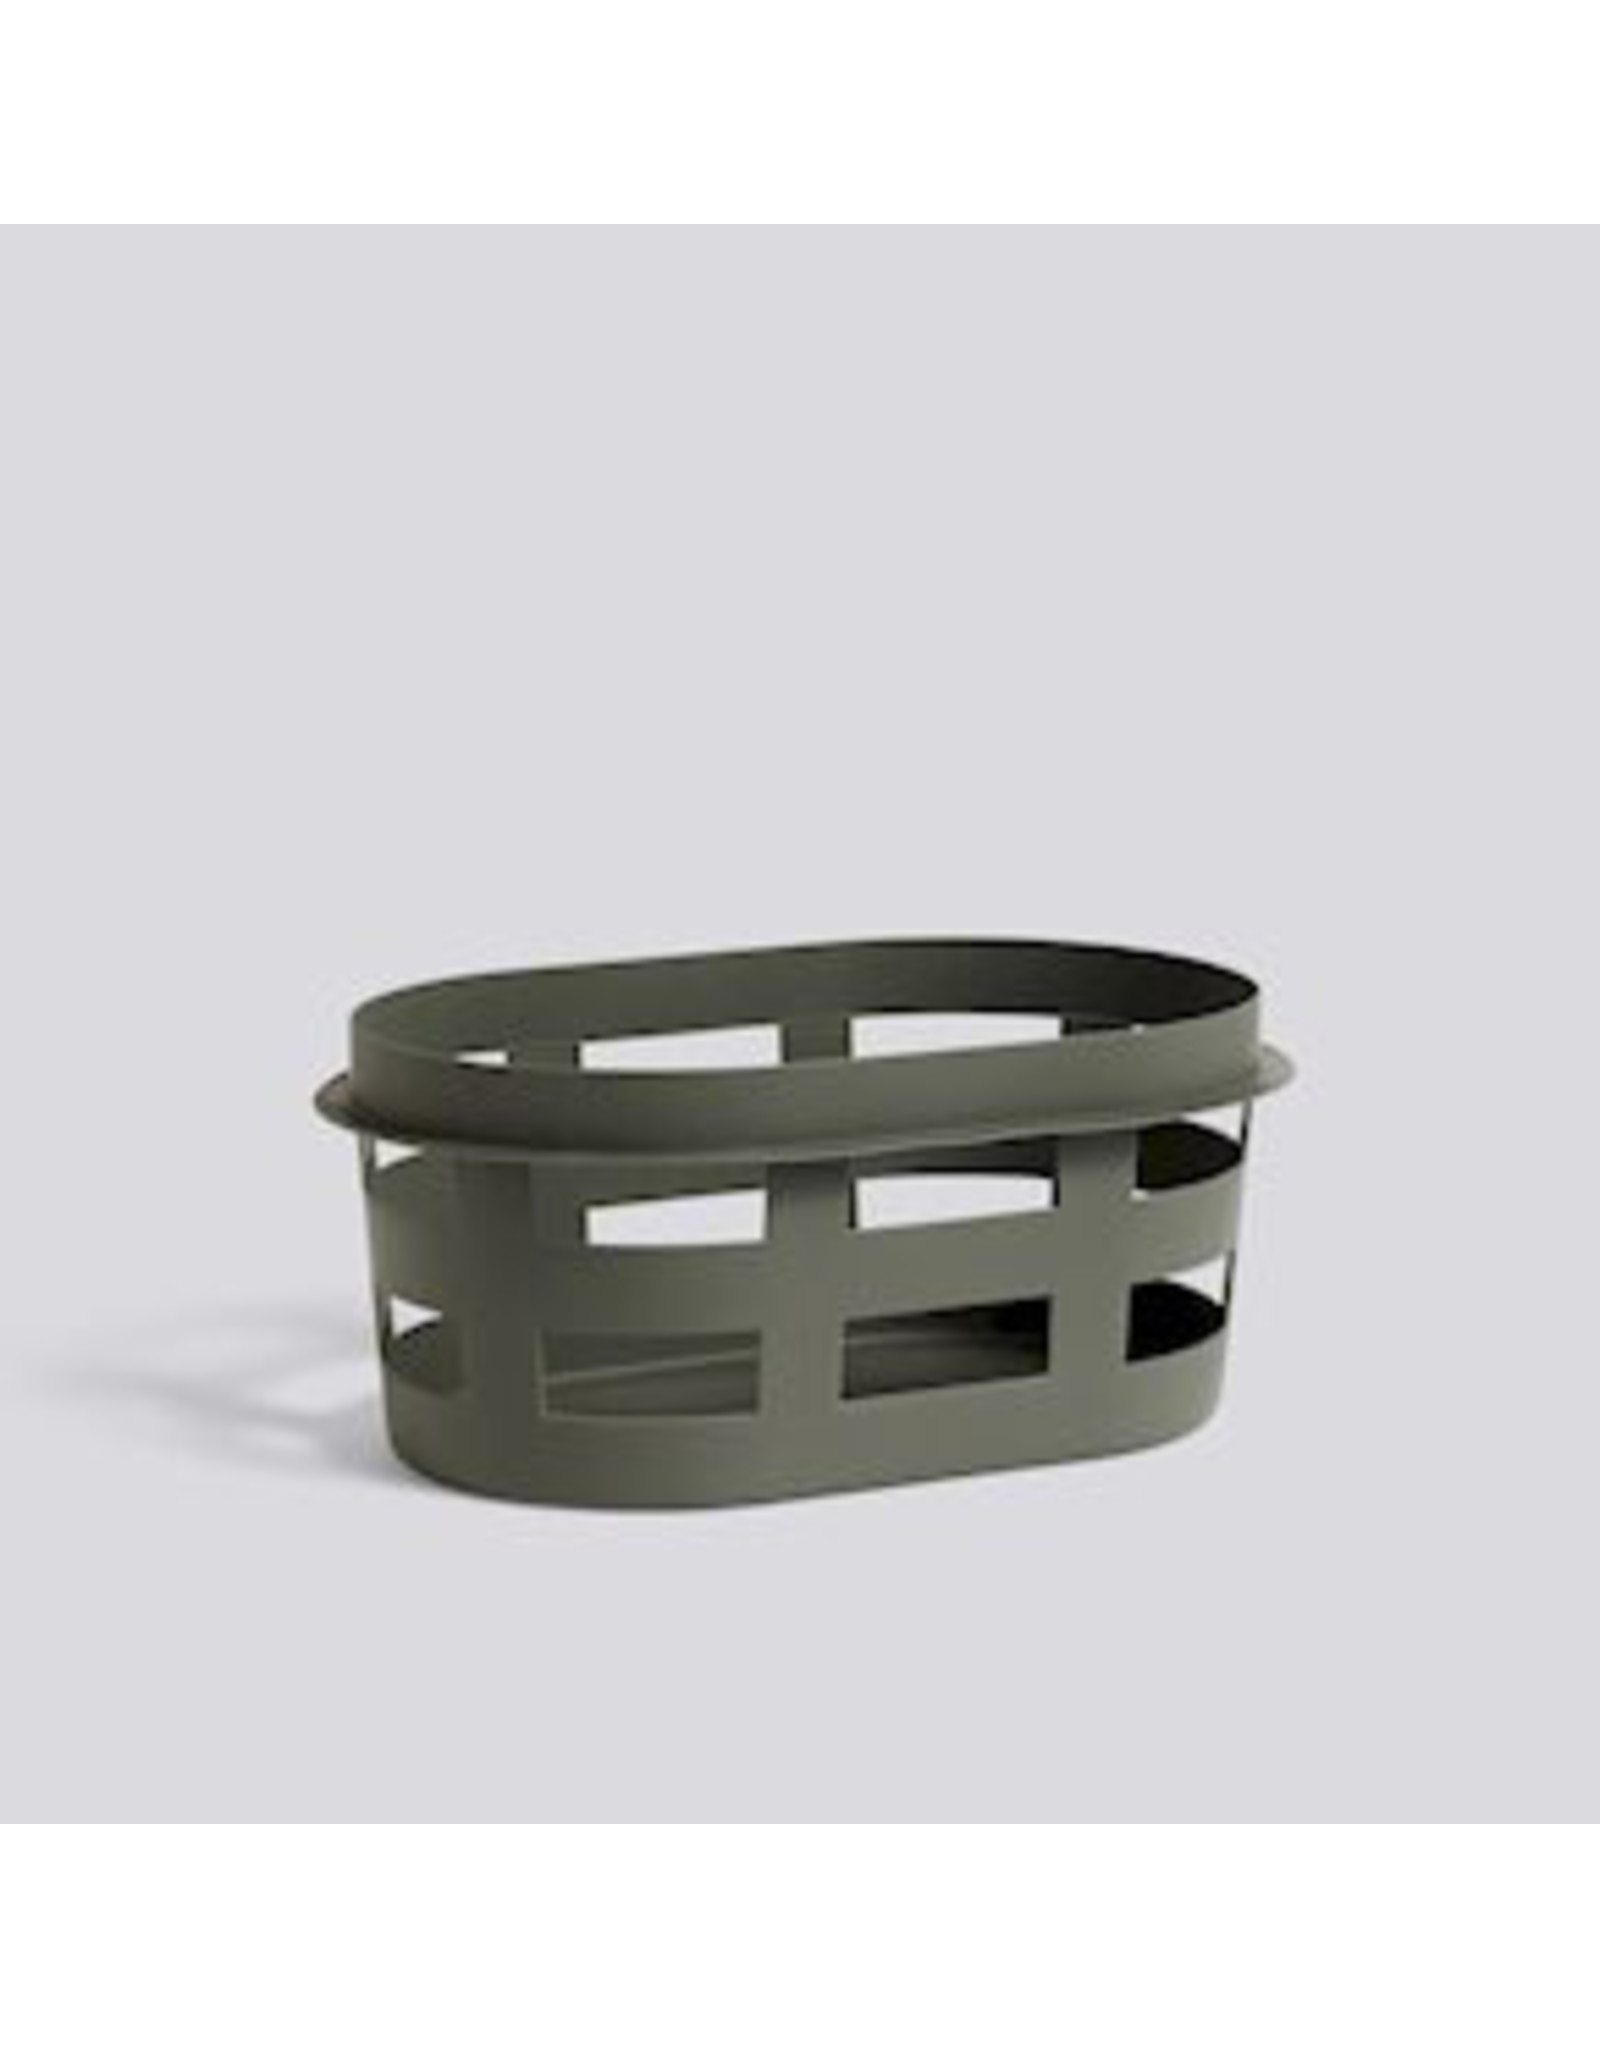 badkamer accessoires LAUNDRY BASKET SMALL ARMY